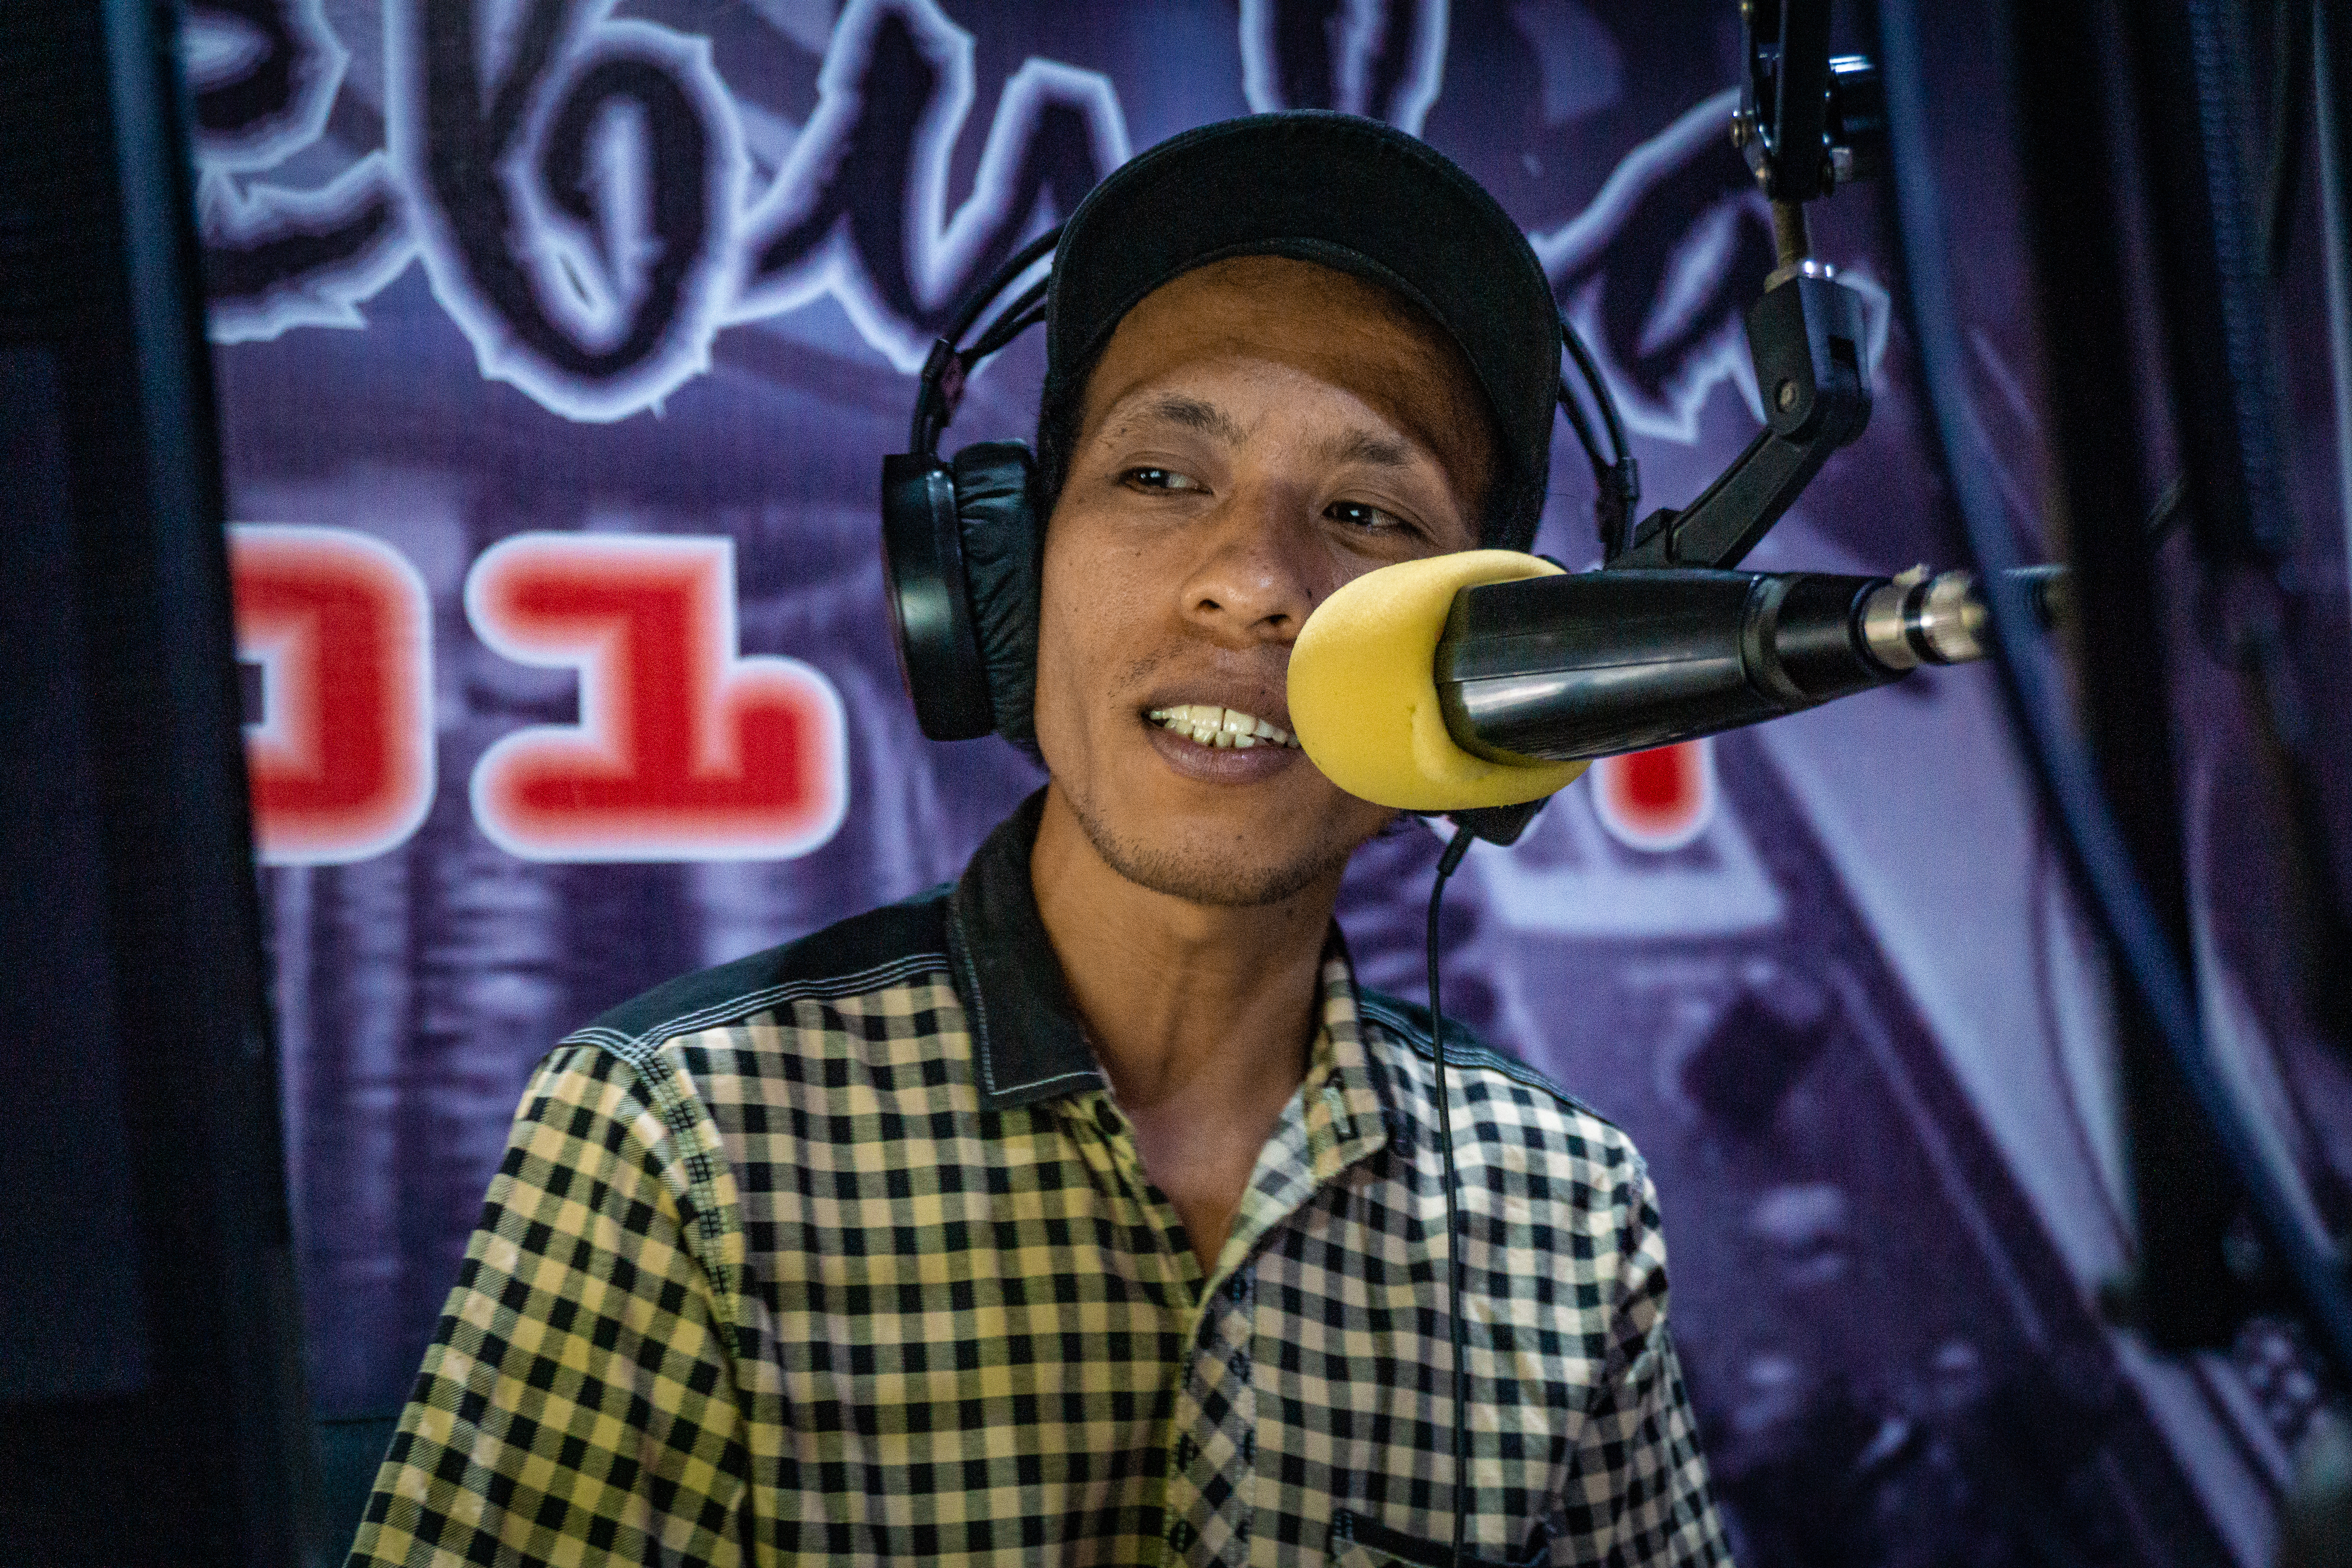 Delano Indonesian journalist on mic for Radio Nebula in Sulawesi